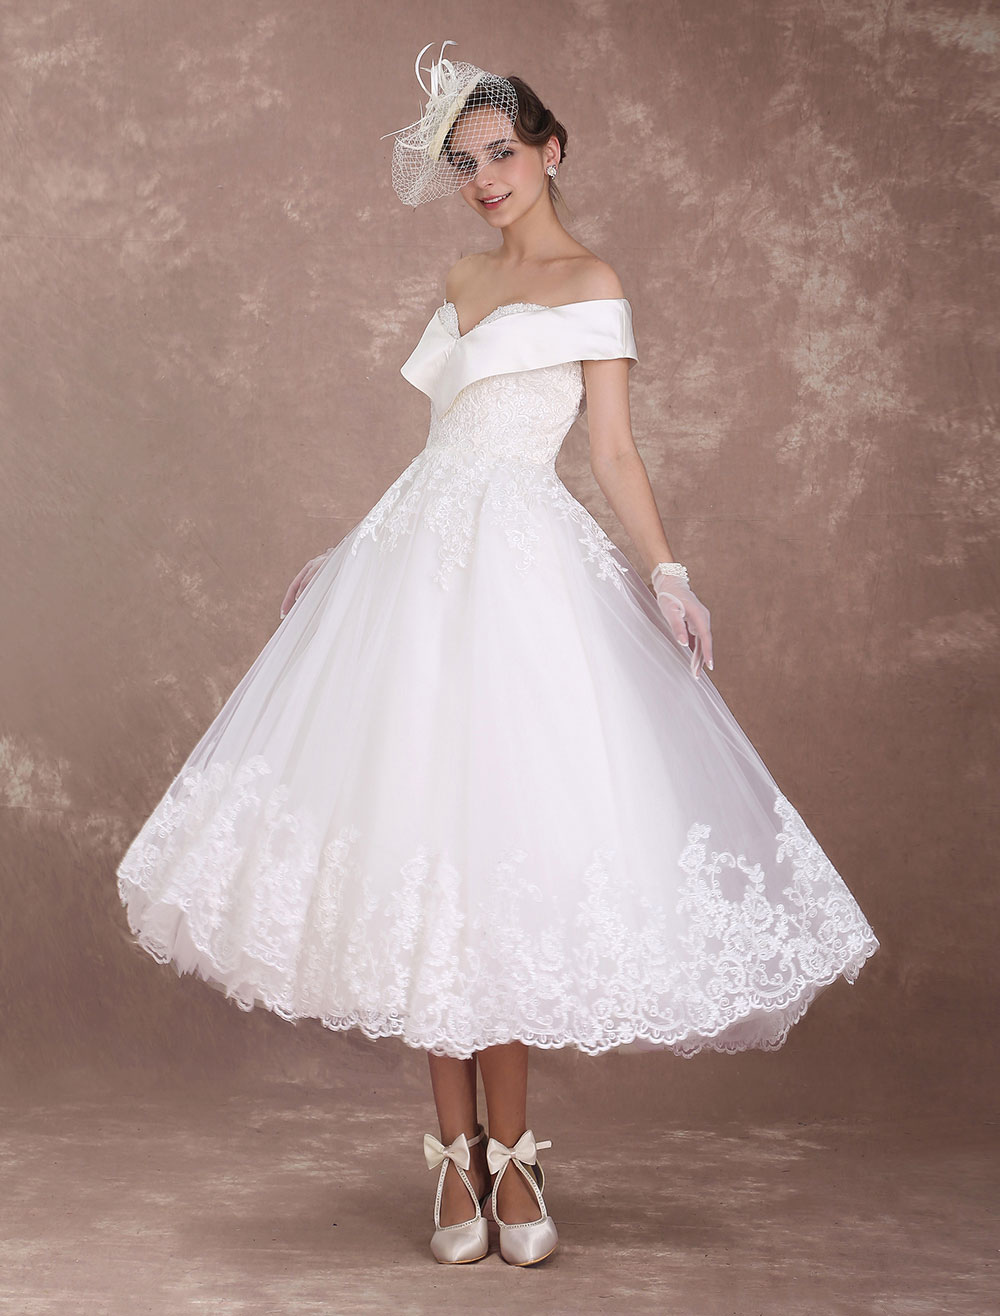 Vintage Wedding Dresses Off The Shoulder Short Bridal Dress 1950 S